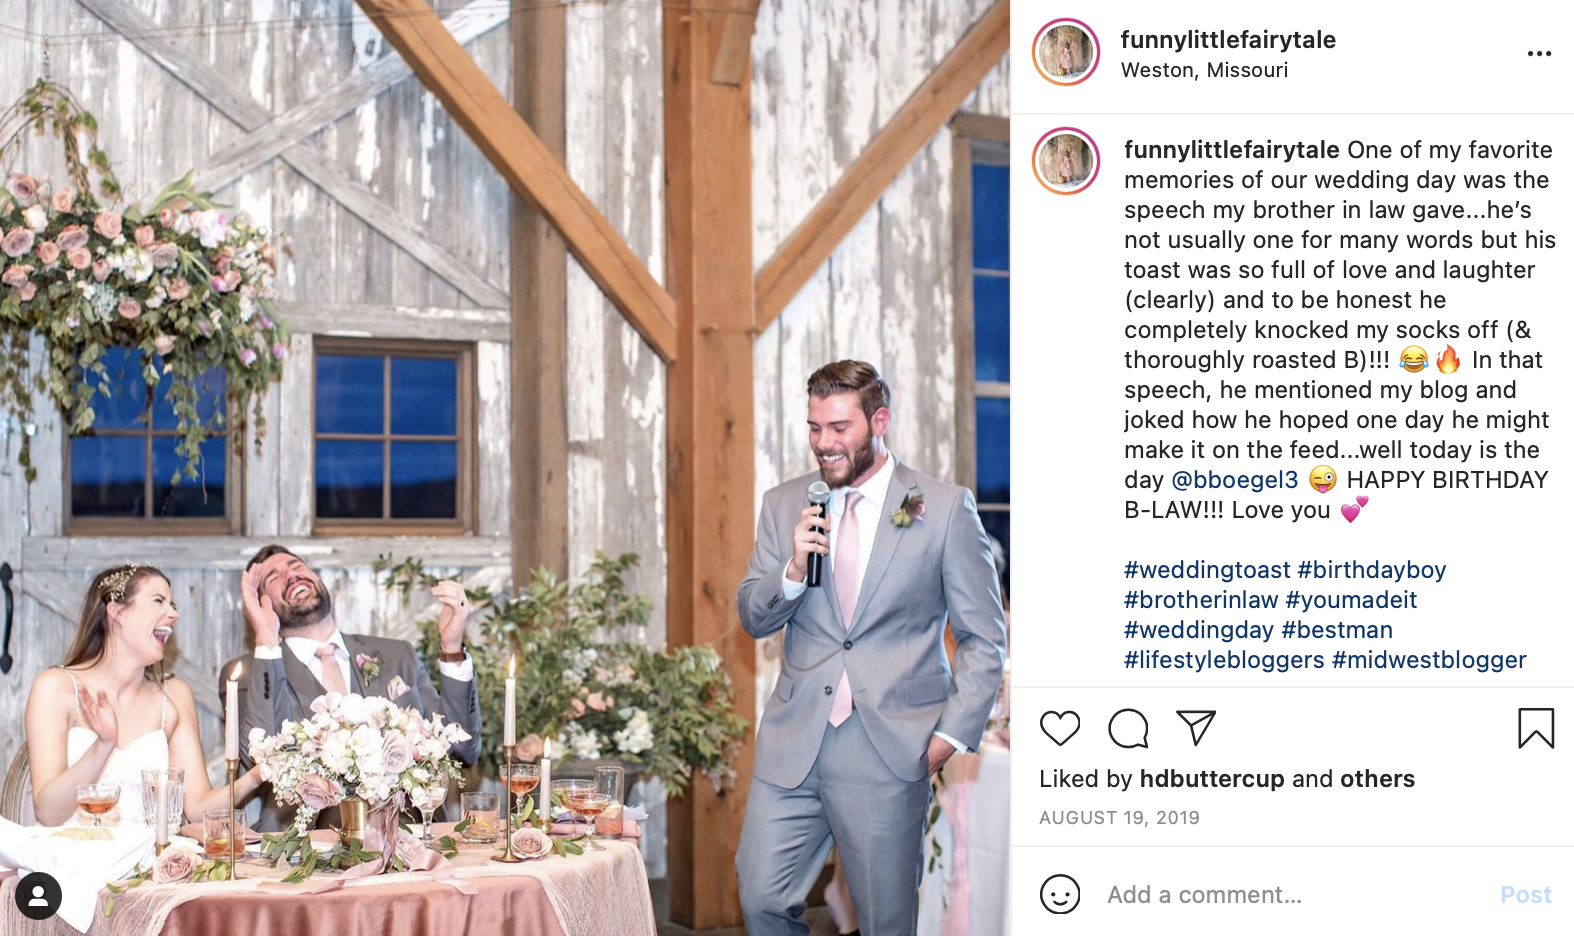 a groomsman gives a toast in a rustic setting